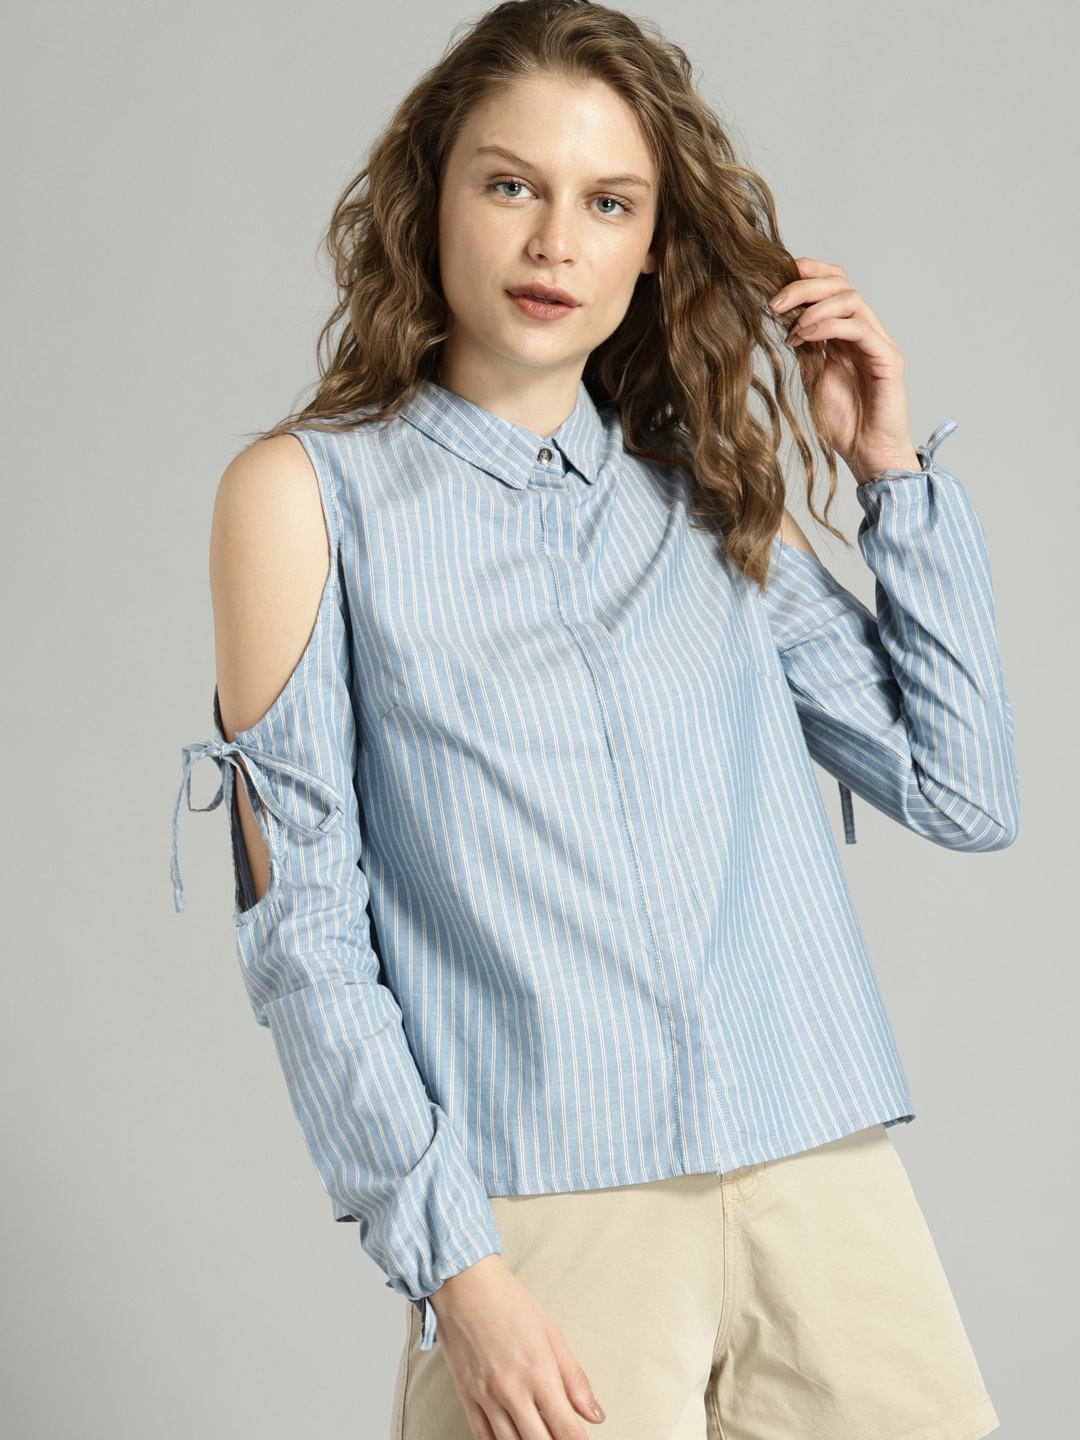 aa666c53c2 Buy Roadster Women Blue & White Striped Shirt Style Top - Tops for ...